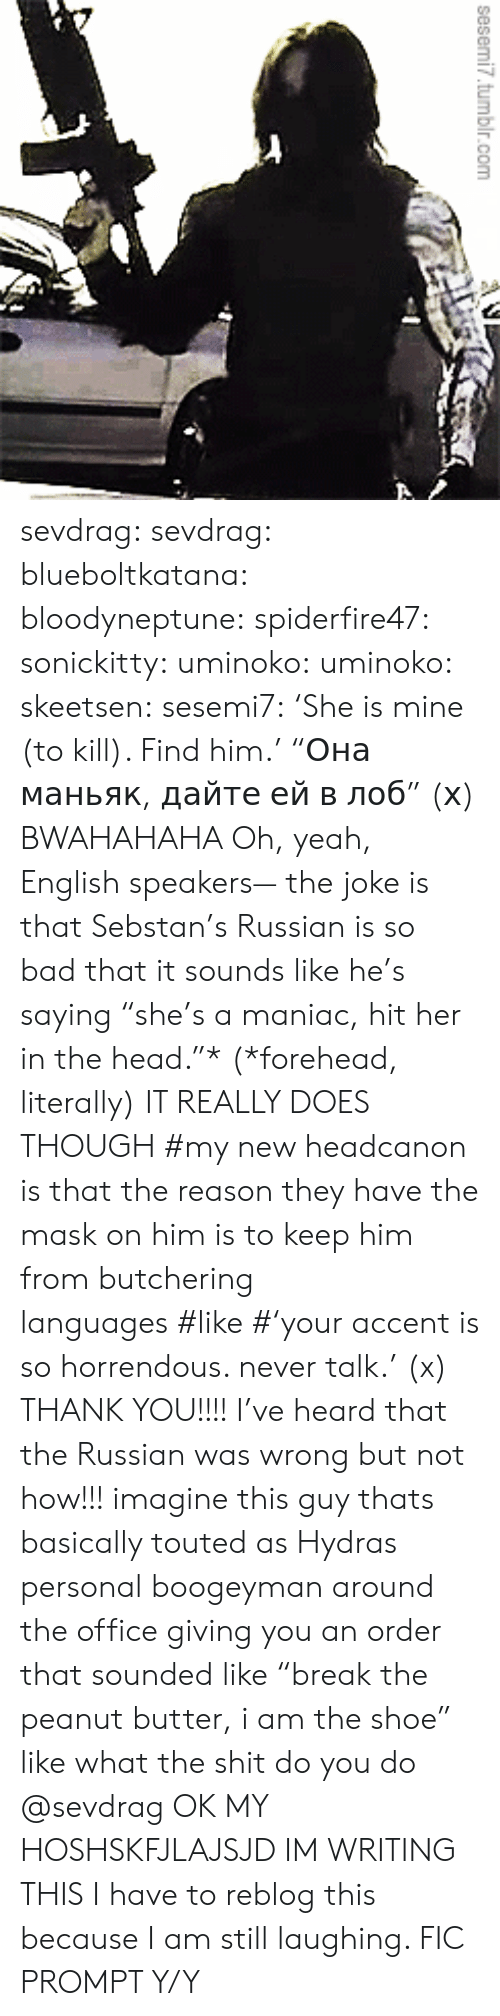 "The Mask: sesemi7.tumbir.com  1 sevdrag: sevdrag:   blueboltkatana:   bloodyneptune:  spiderfire47:  sonickitty:   uminoko:  uminoko:  skeetsen:  sesemi7:  'She is mine (to kill). Find him.'  ""Она маньяк, дайте ей в лоб"" (х)  BWAHAHAHA  Oh, yeah, English speakers— the joke is that Sebstan's Russian is so bad that it sounds like he's saying ""she's a maniac, hit her in the head.""* (*forehead, literally) IT REALLY DOES THOUGH   #my new headcanon is that the reason they have the mask on him is to keep him from butchering languages #like #'your accent is so horrendous. never talk.' (x)   THANK YOU!!!! I've heard that the Russian was wrong but not how!!!  imagine this guy thats basically touted as Hydras personal boogeyman around the office giving you an order that sounded like ""break the peanut butter, i am the shoe"" like what the shit do you do   @sevdrag    OK MY HOSHSKFJLAJSJD  IM WRITING THIS   I have to reblog this because I am still laughing. FIC PROMPT Y/Y"